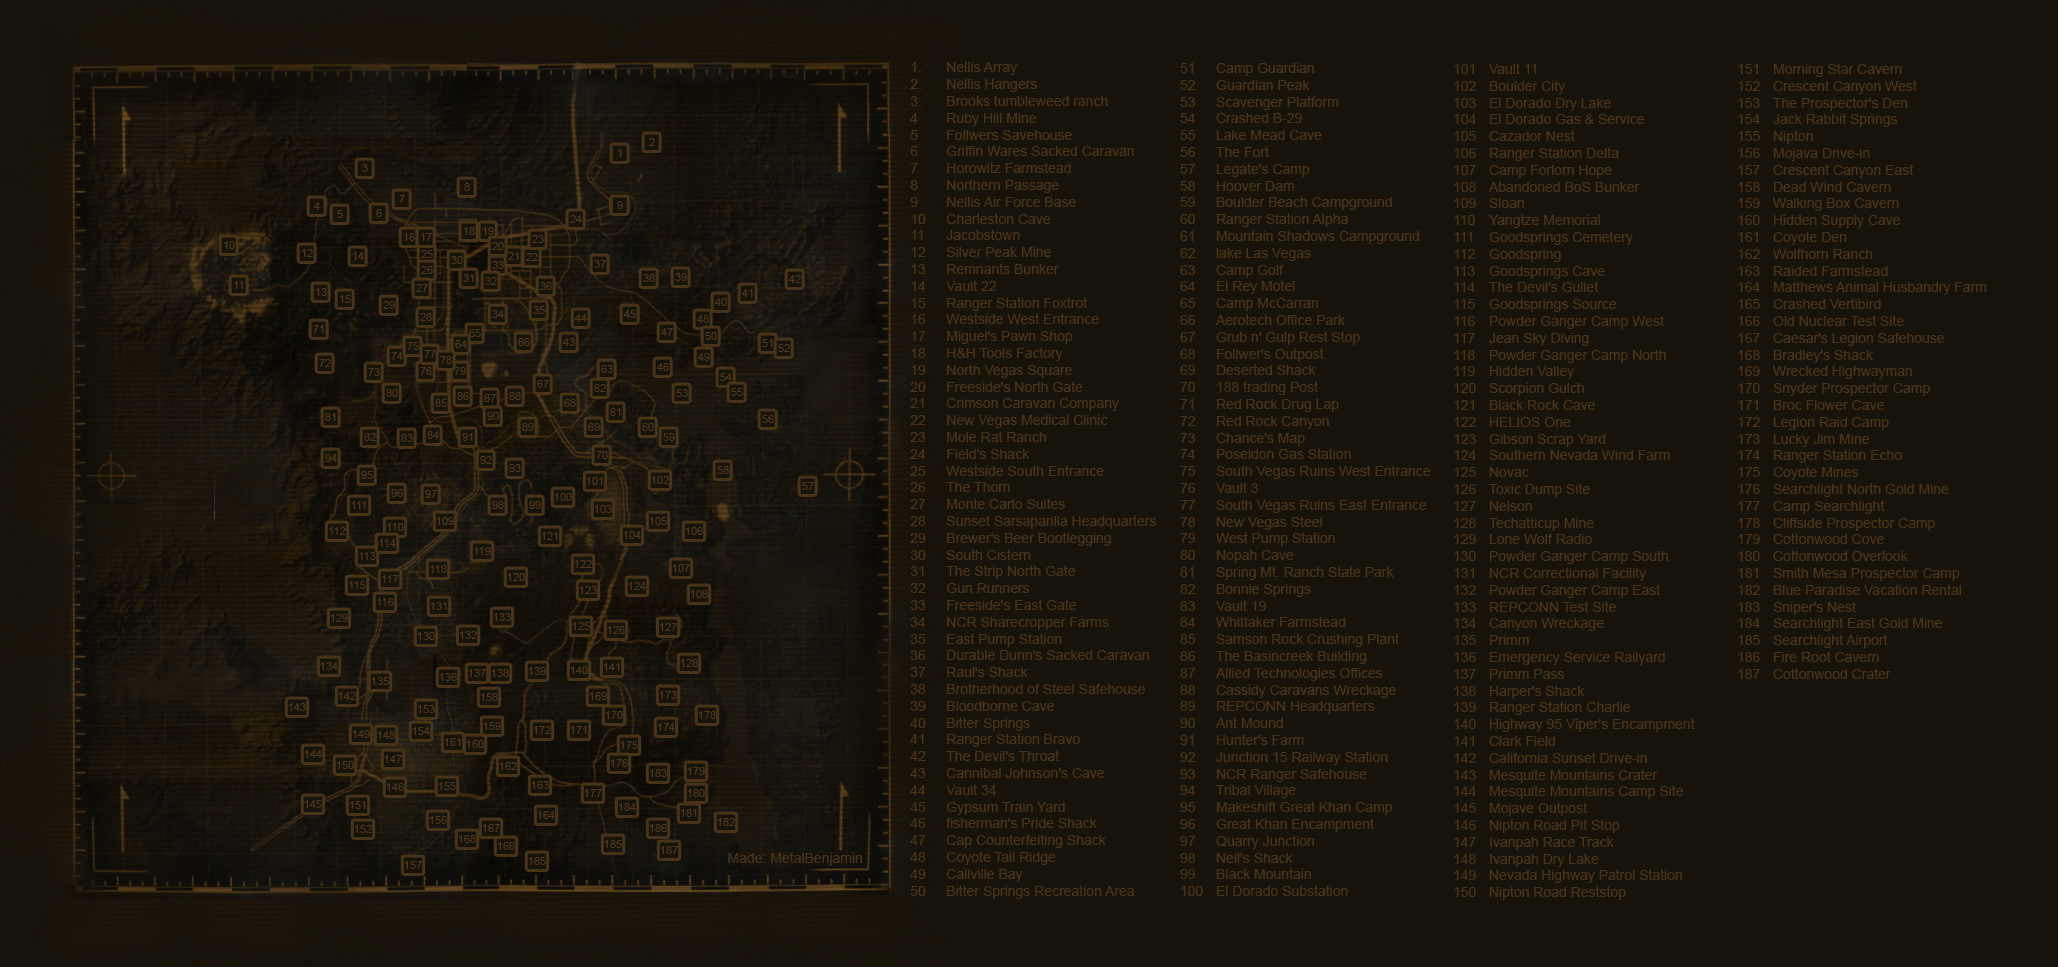 Fallout Las Vegas Map.Fallout New Vegas Map With Names At Fallout New Vegas Mods And